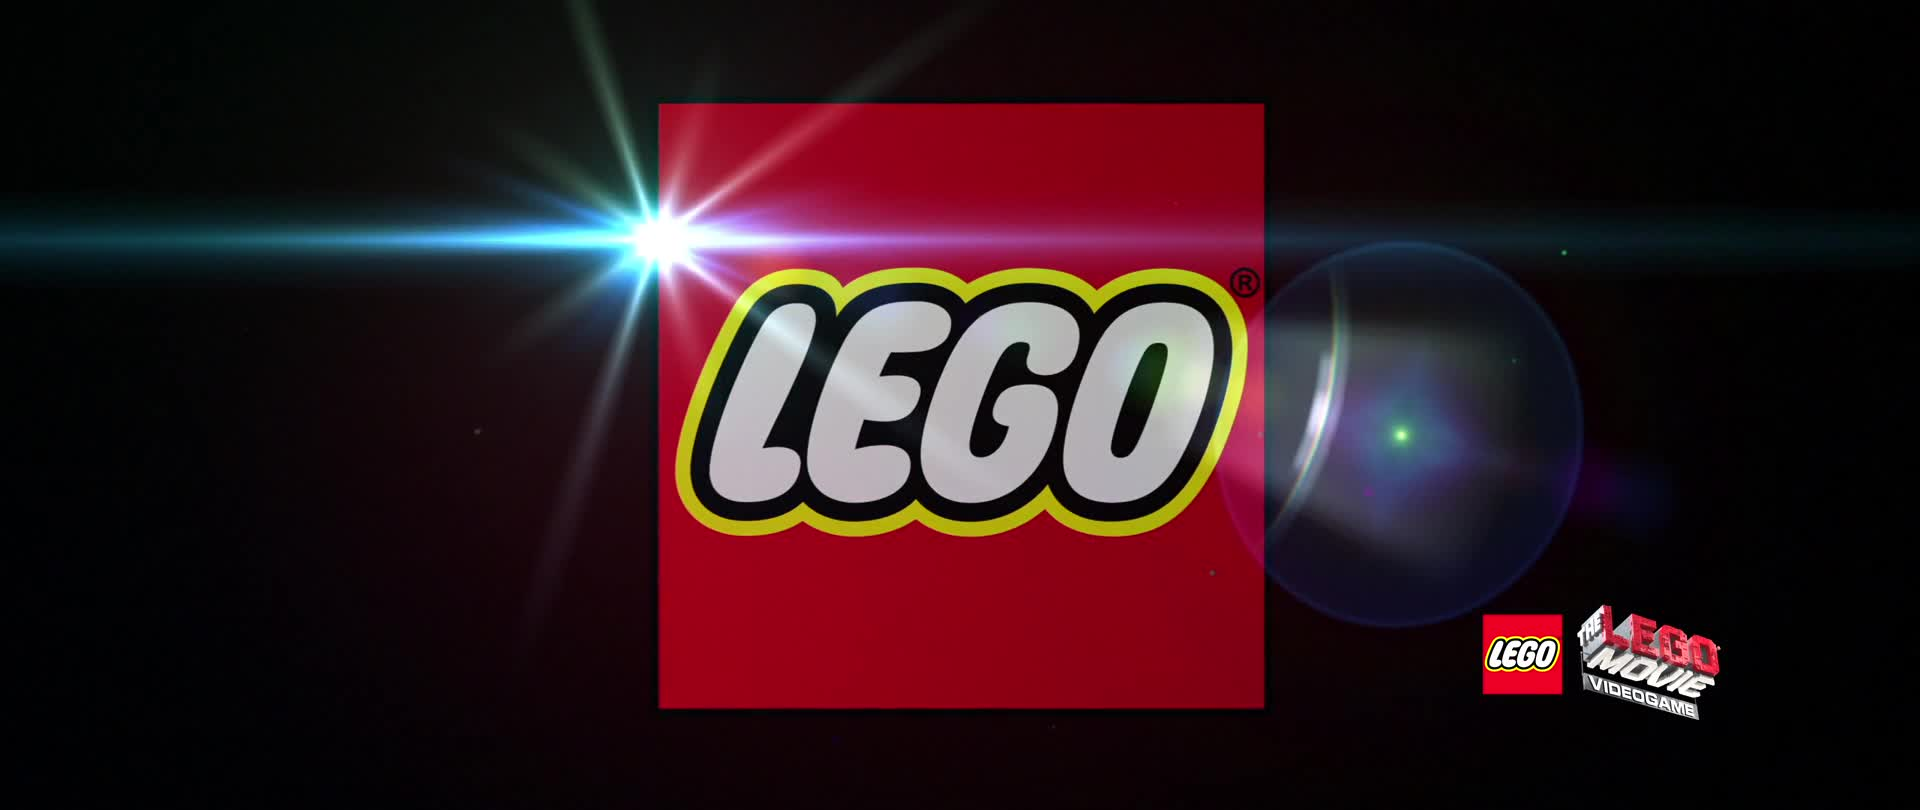 Y 8 Lego Movie Video Game Announce Trailer Video Watch At Y8